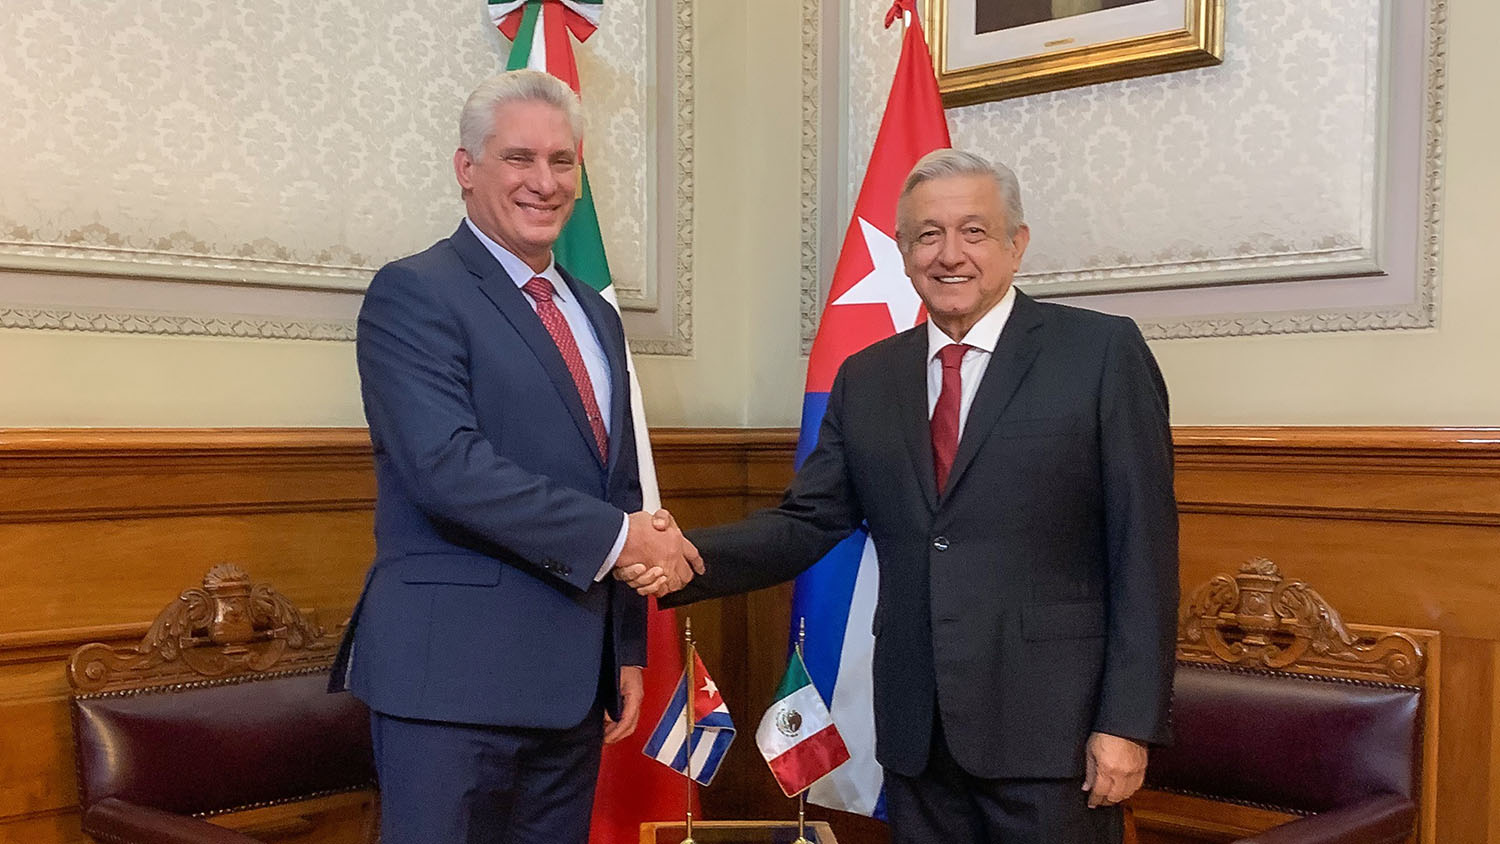 Saturday, December 1, 2018. Mexico City - Miguel Díaz-Canel Bermúdez, President of the Republic of Cuba and Andrés Manuel López Obrador, President of Mexico. Photo by the Mexican government.